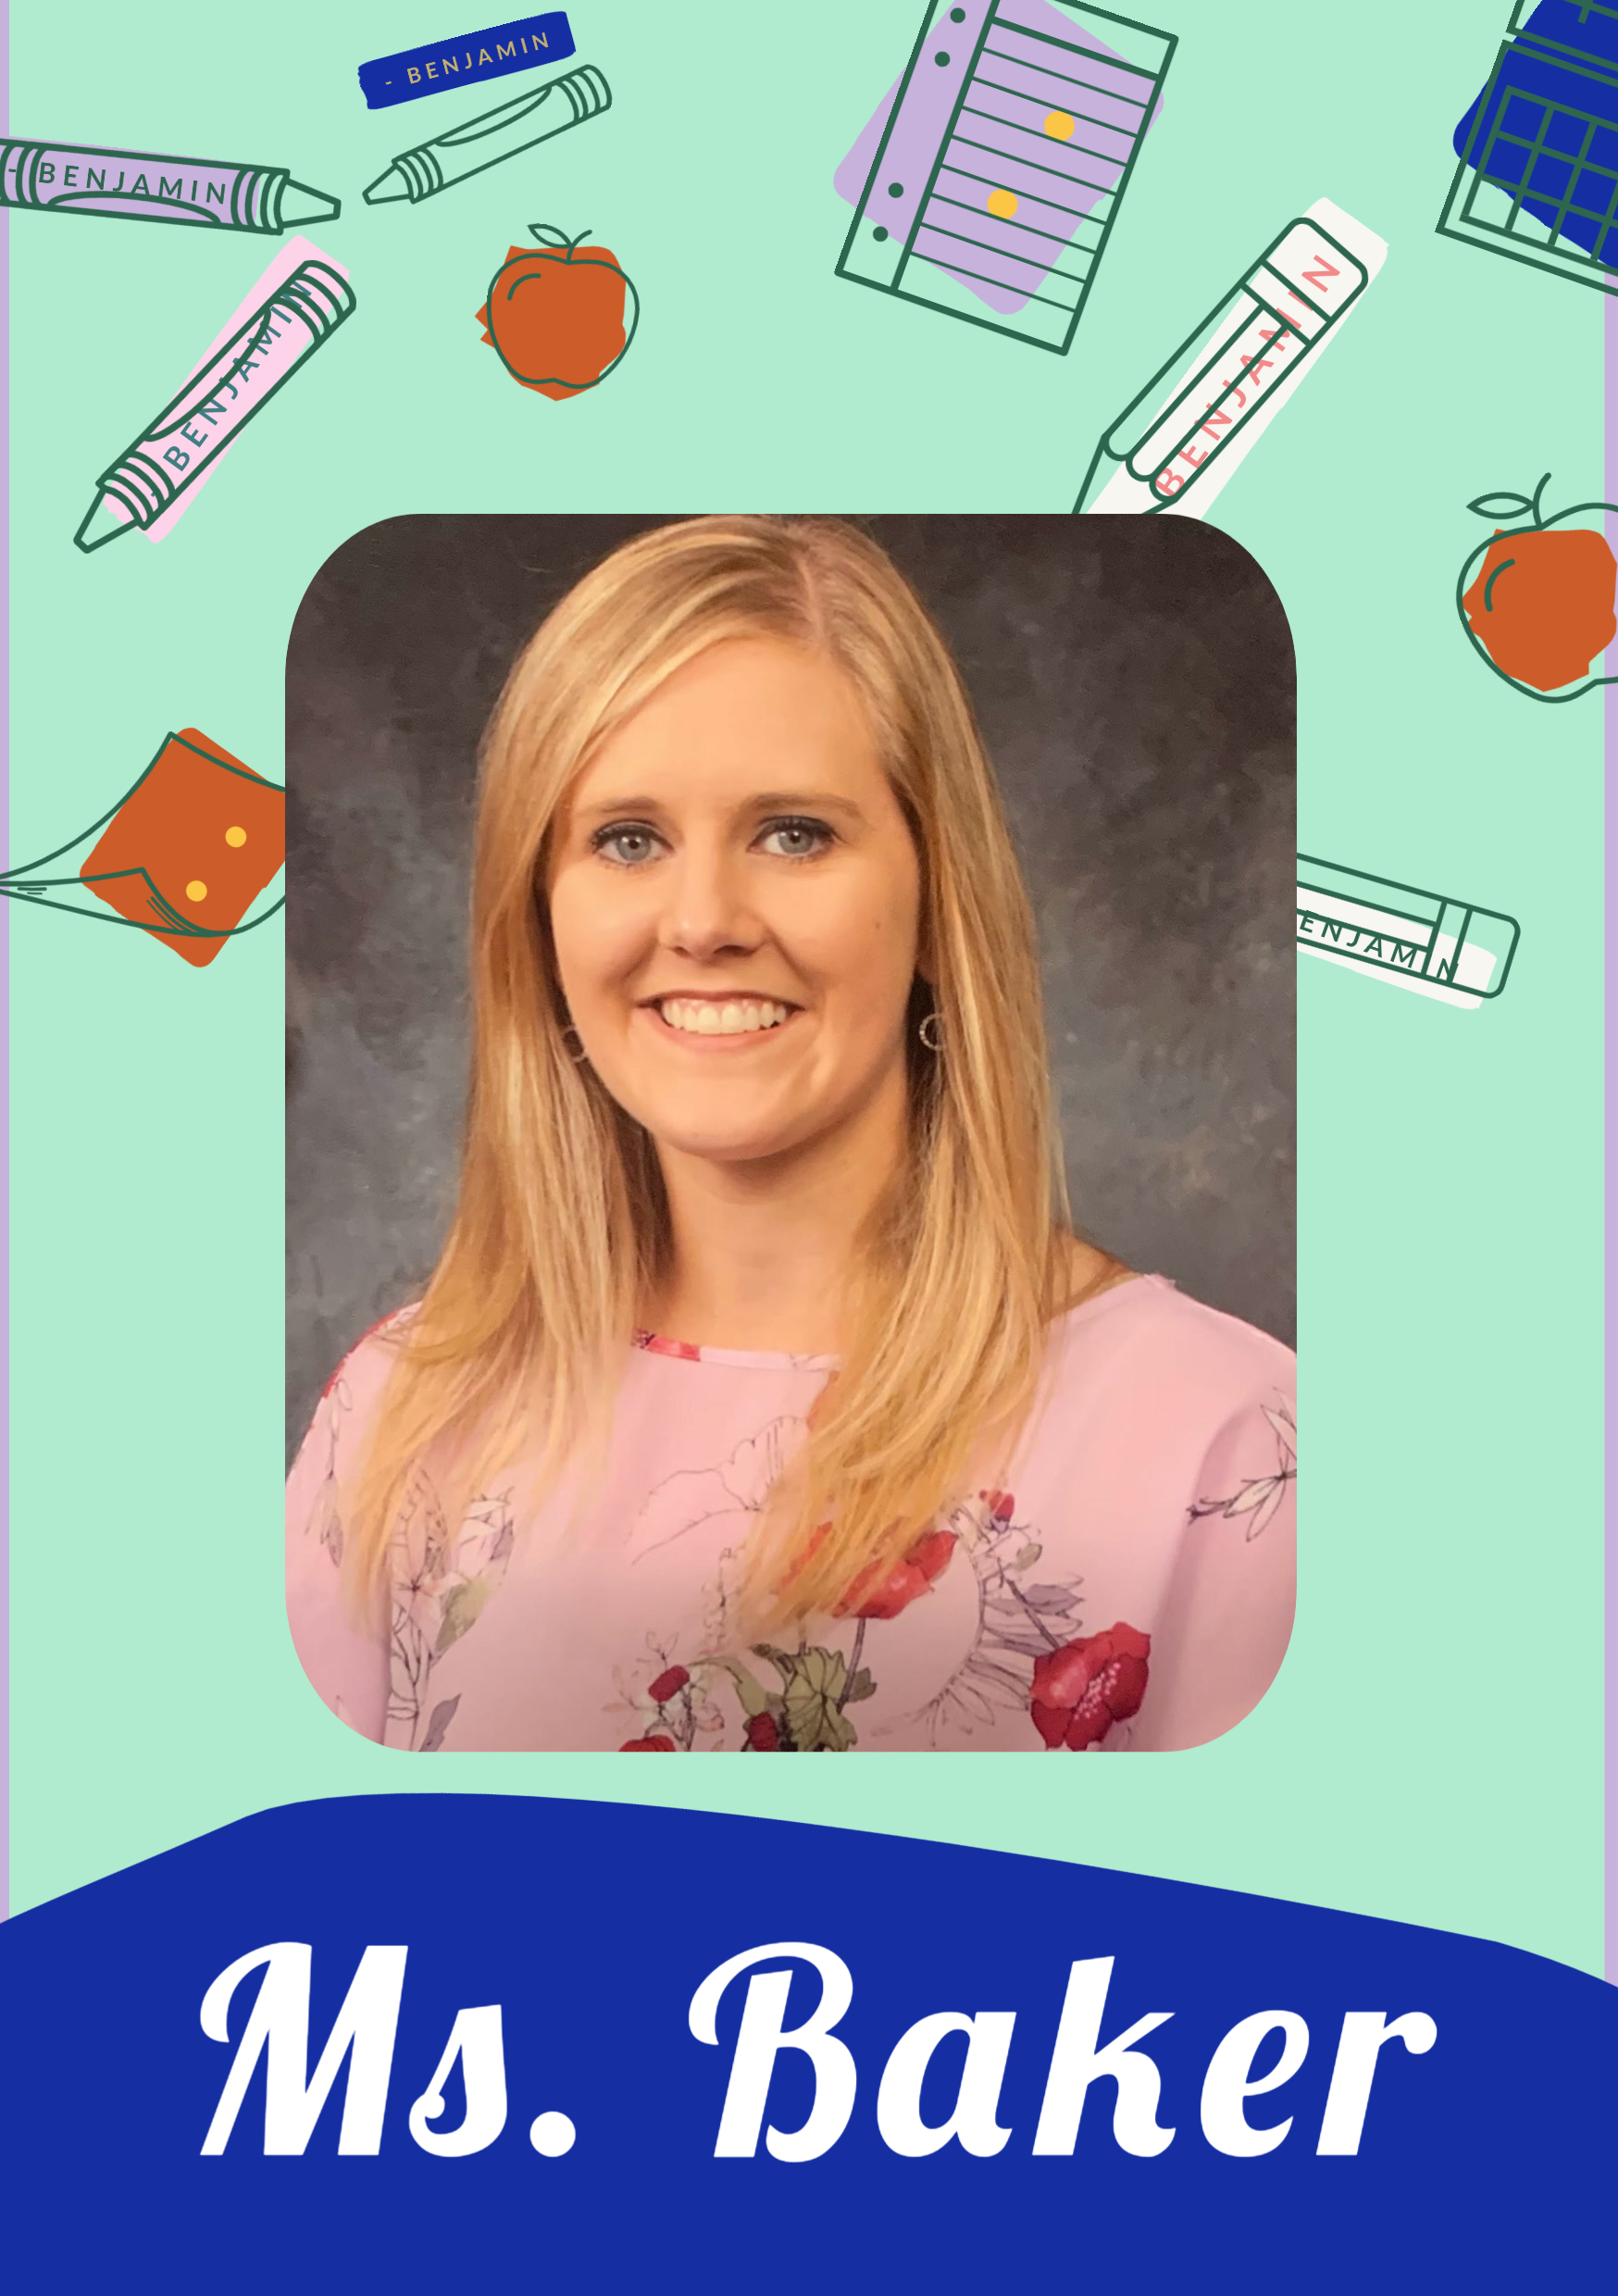 Ms. Baker, one of the speech pathologists